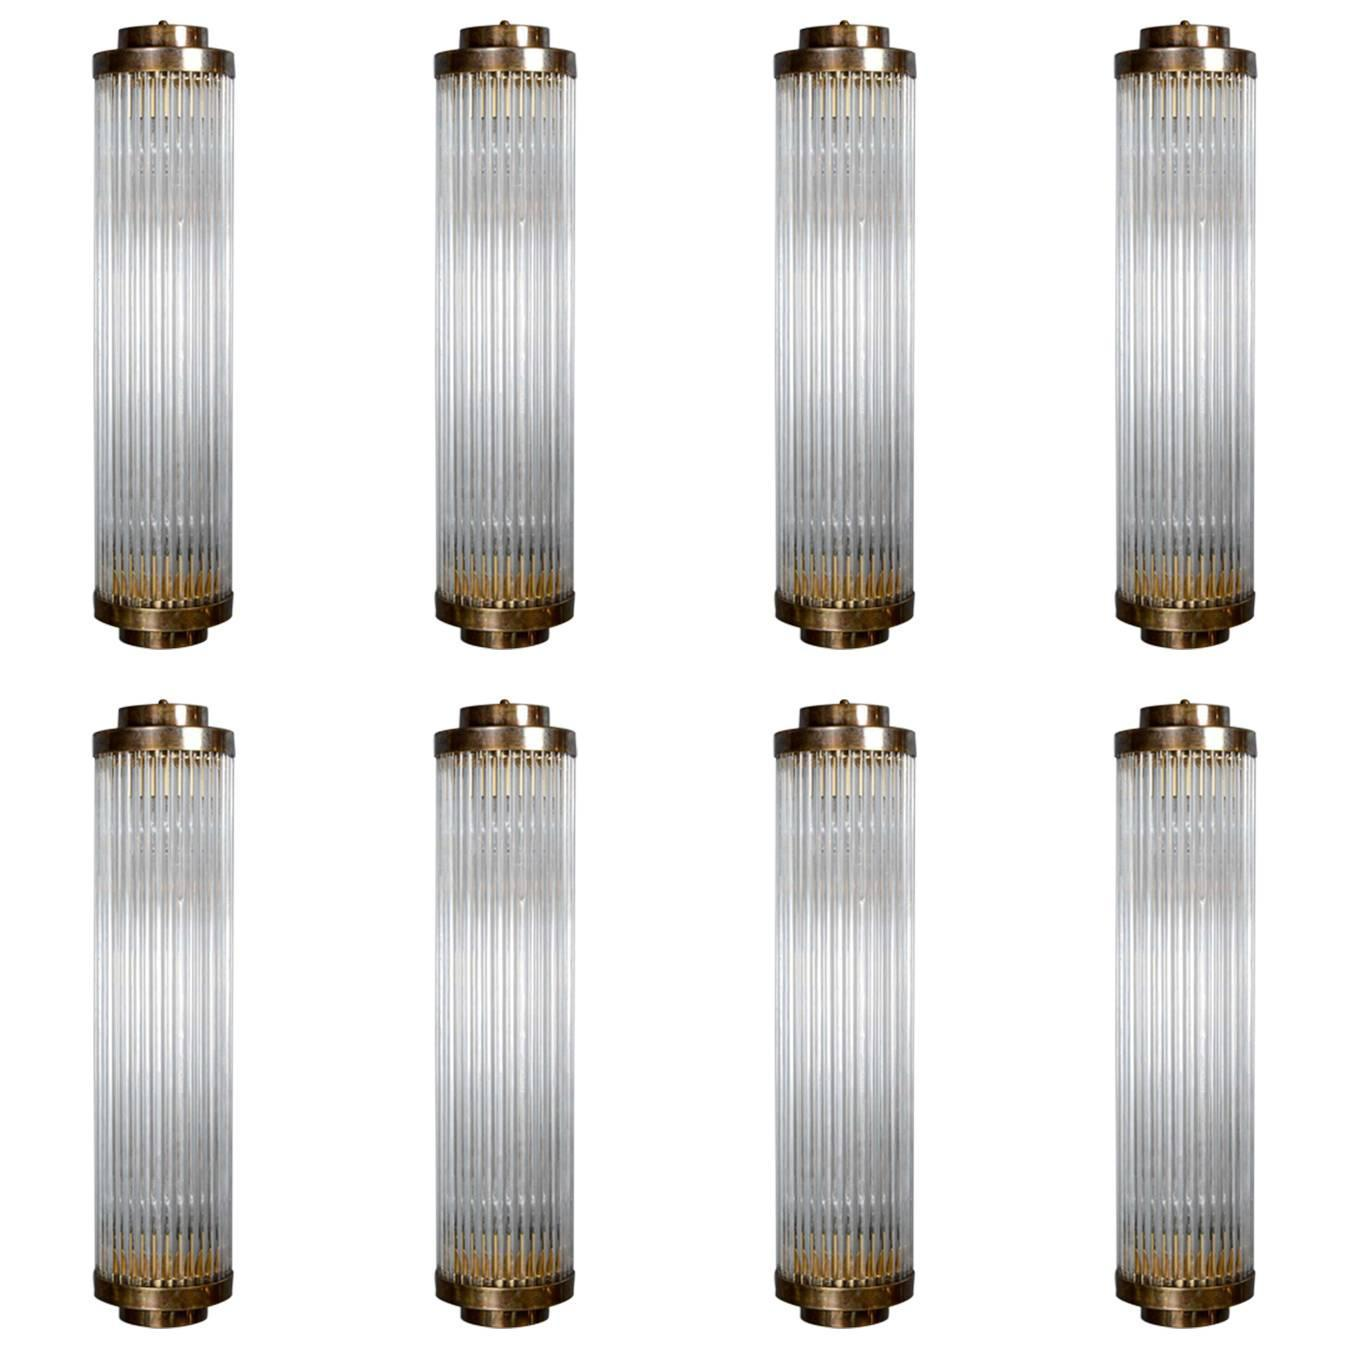 Set of Height Brass and Glass Rods Wall Sconces at 1stdibs